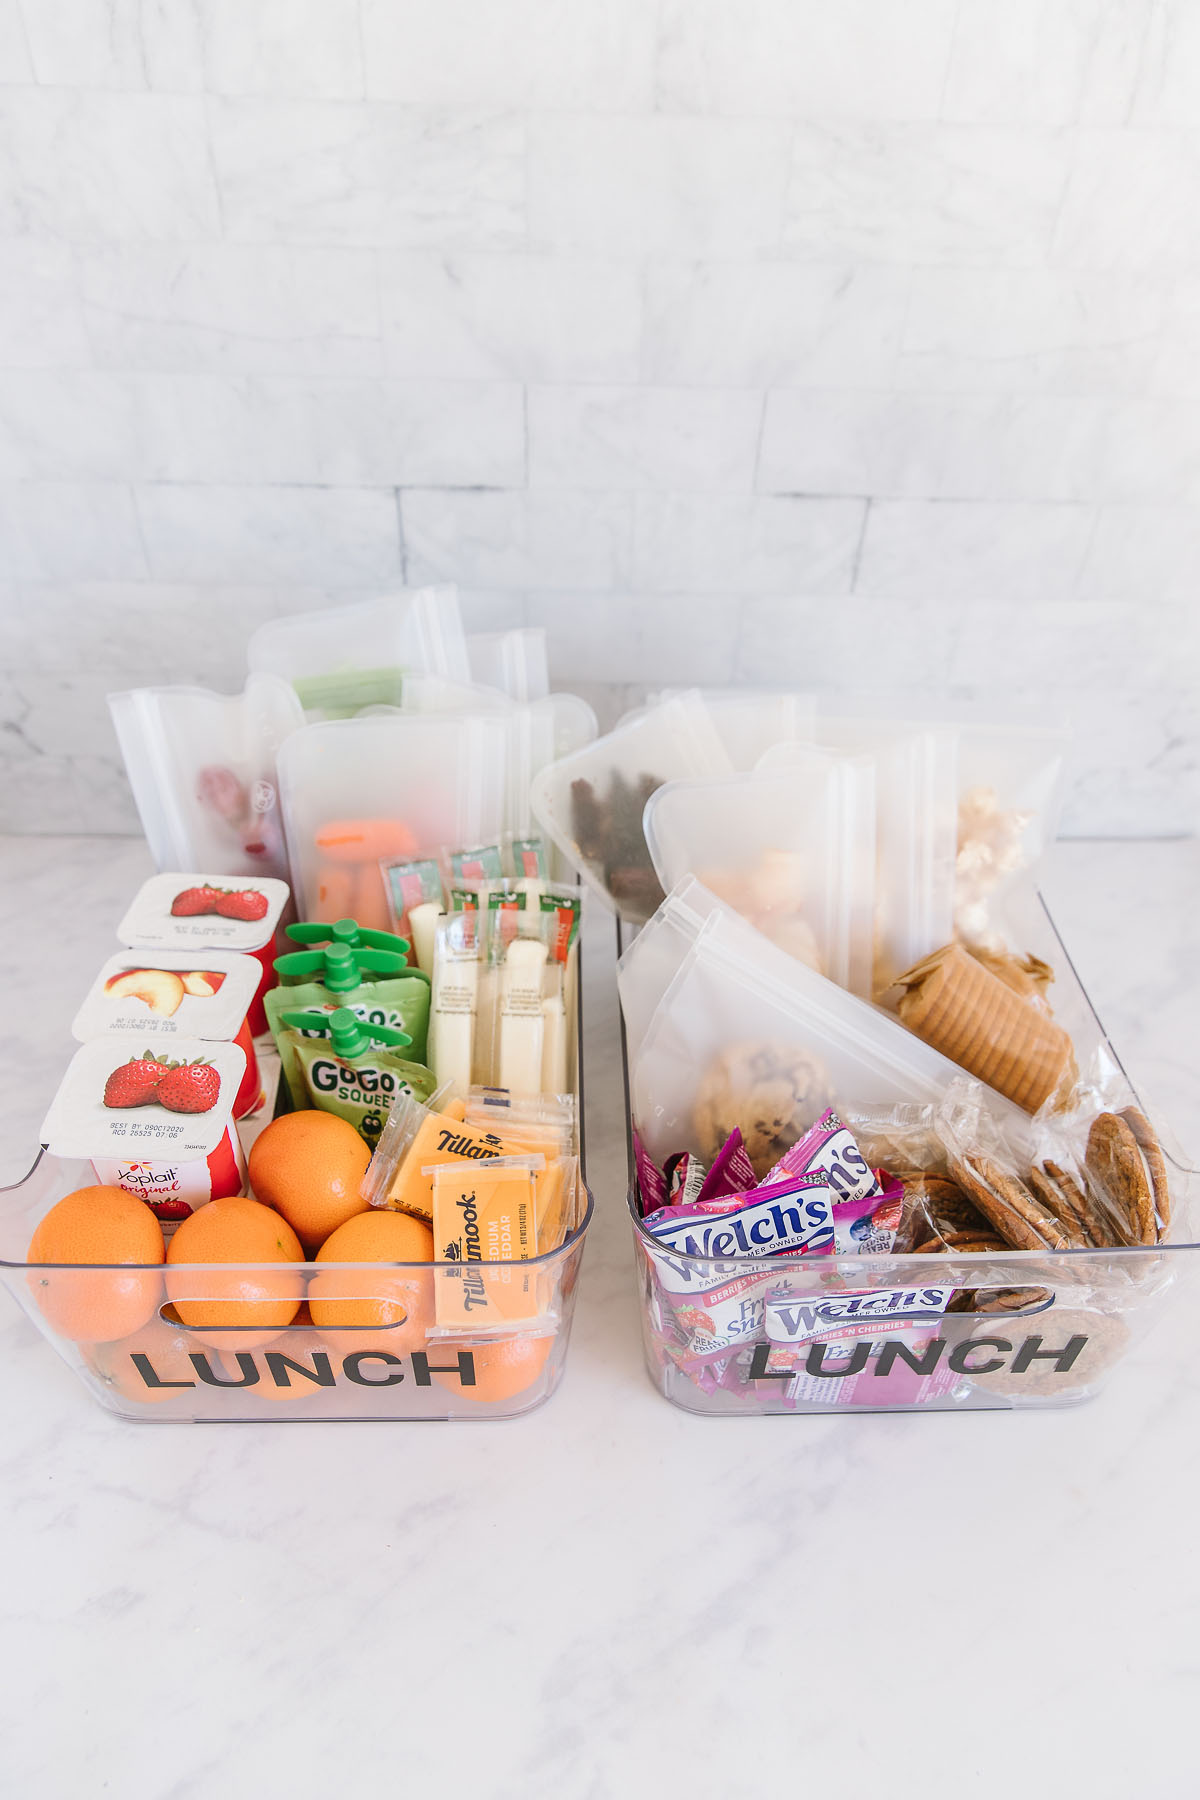 Two plastic containers with the word lunch on both of them. One is filled with prepackaged fruit, cheese and veggies and one is filled with packaged snacks, nuts, peanut butter, crackers and pretzels.